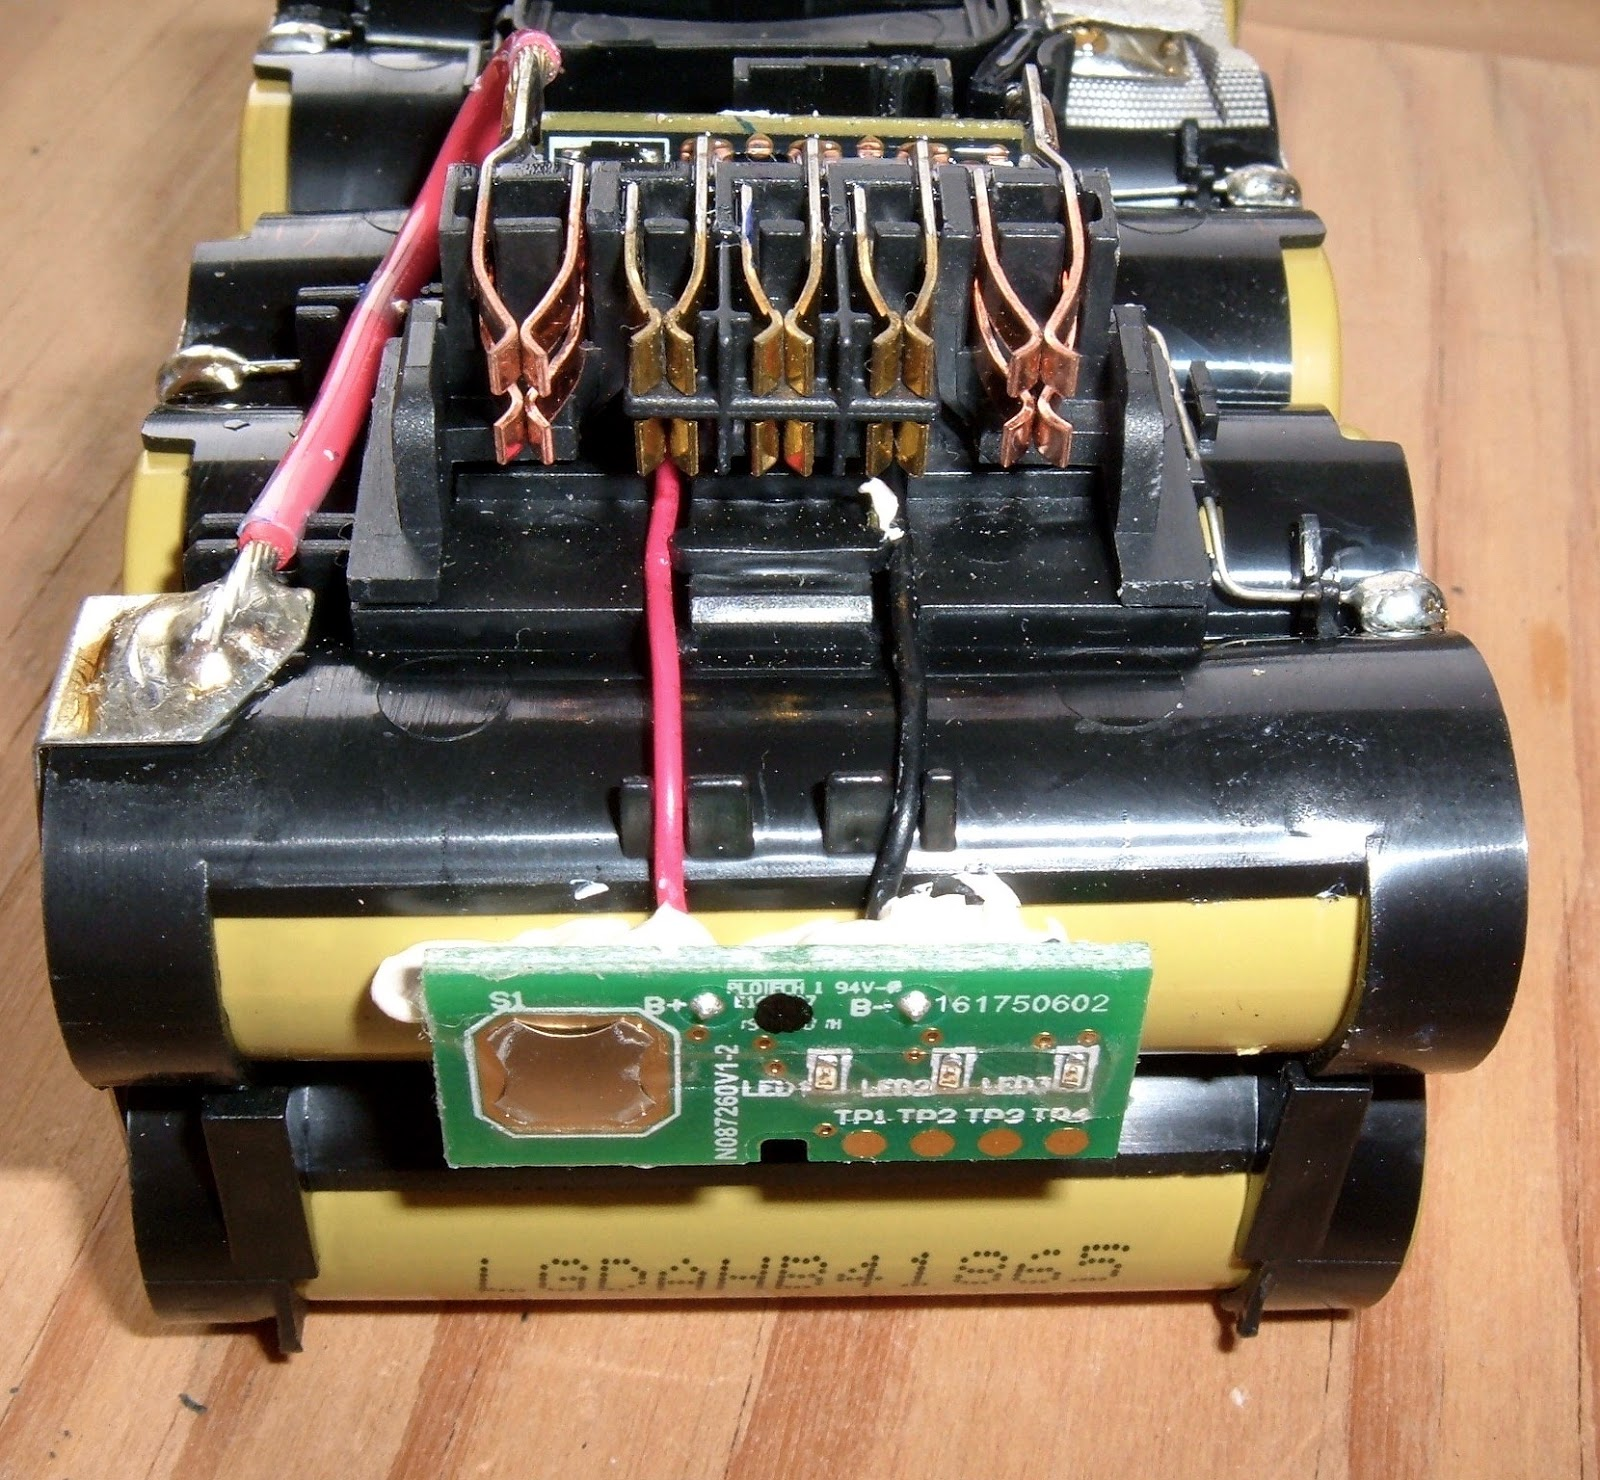 Syonyks Project Blog Dewalt 20v Max 30ah Battery Pack Teardown Common Symbols Include A Cell Switches Meters Power Cells And Interconnects